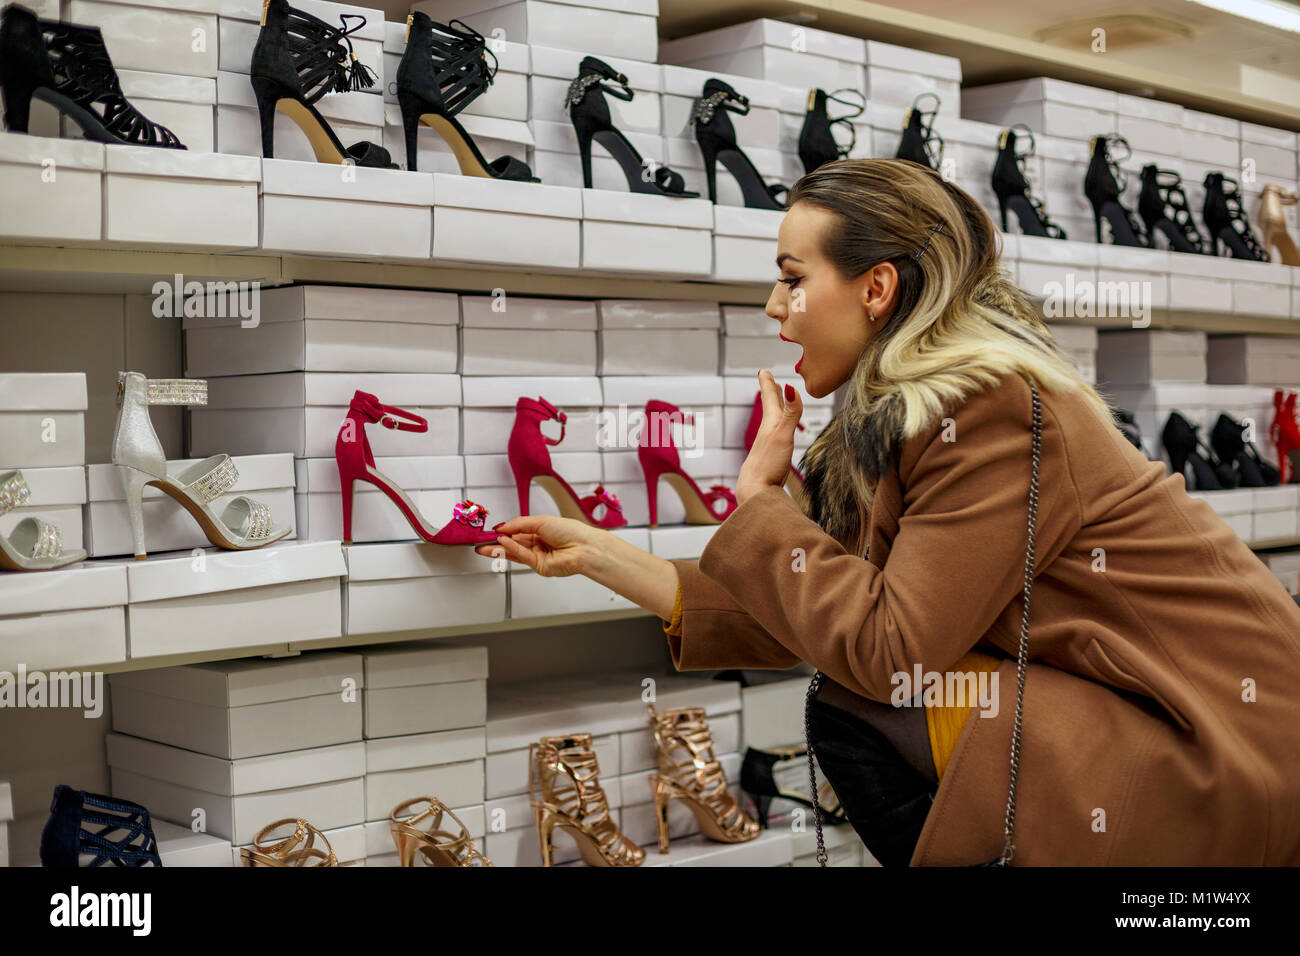 03190c53e10 happy young women shopping at shoes store Stock Photo: 173271054 - Alamy